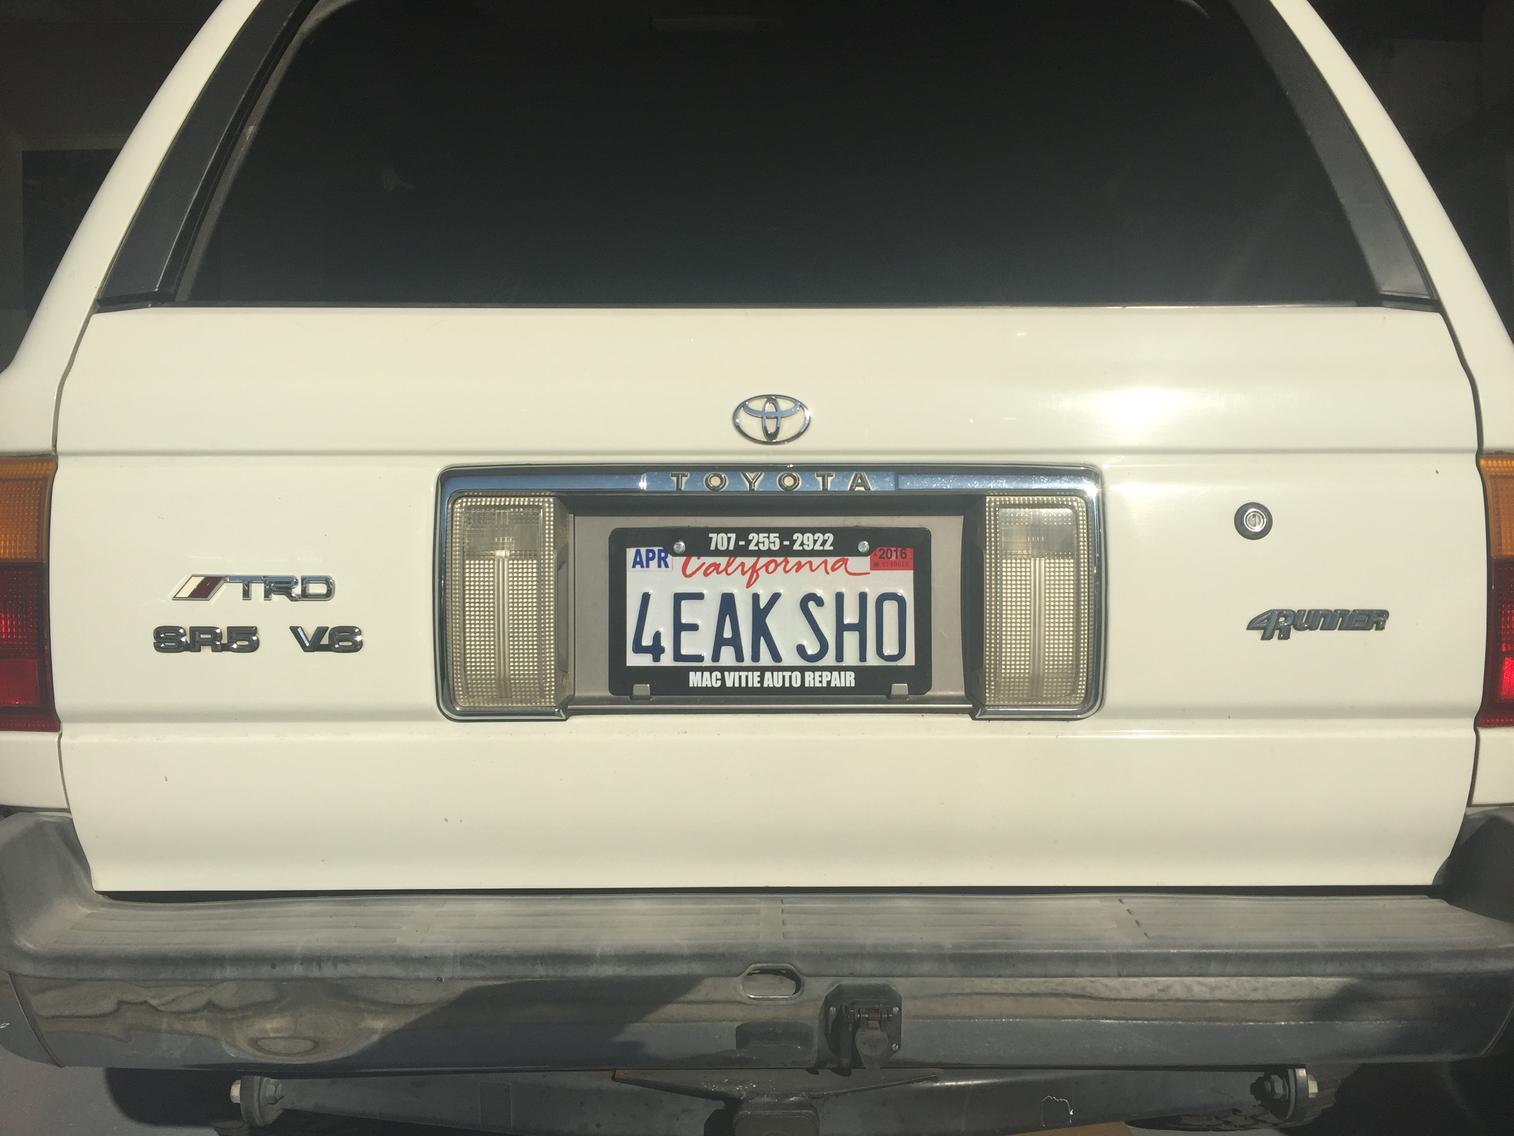 How Do You Like My Personalized Plates Toyota 4runner